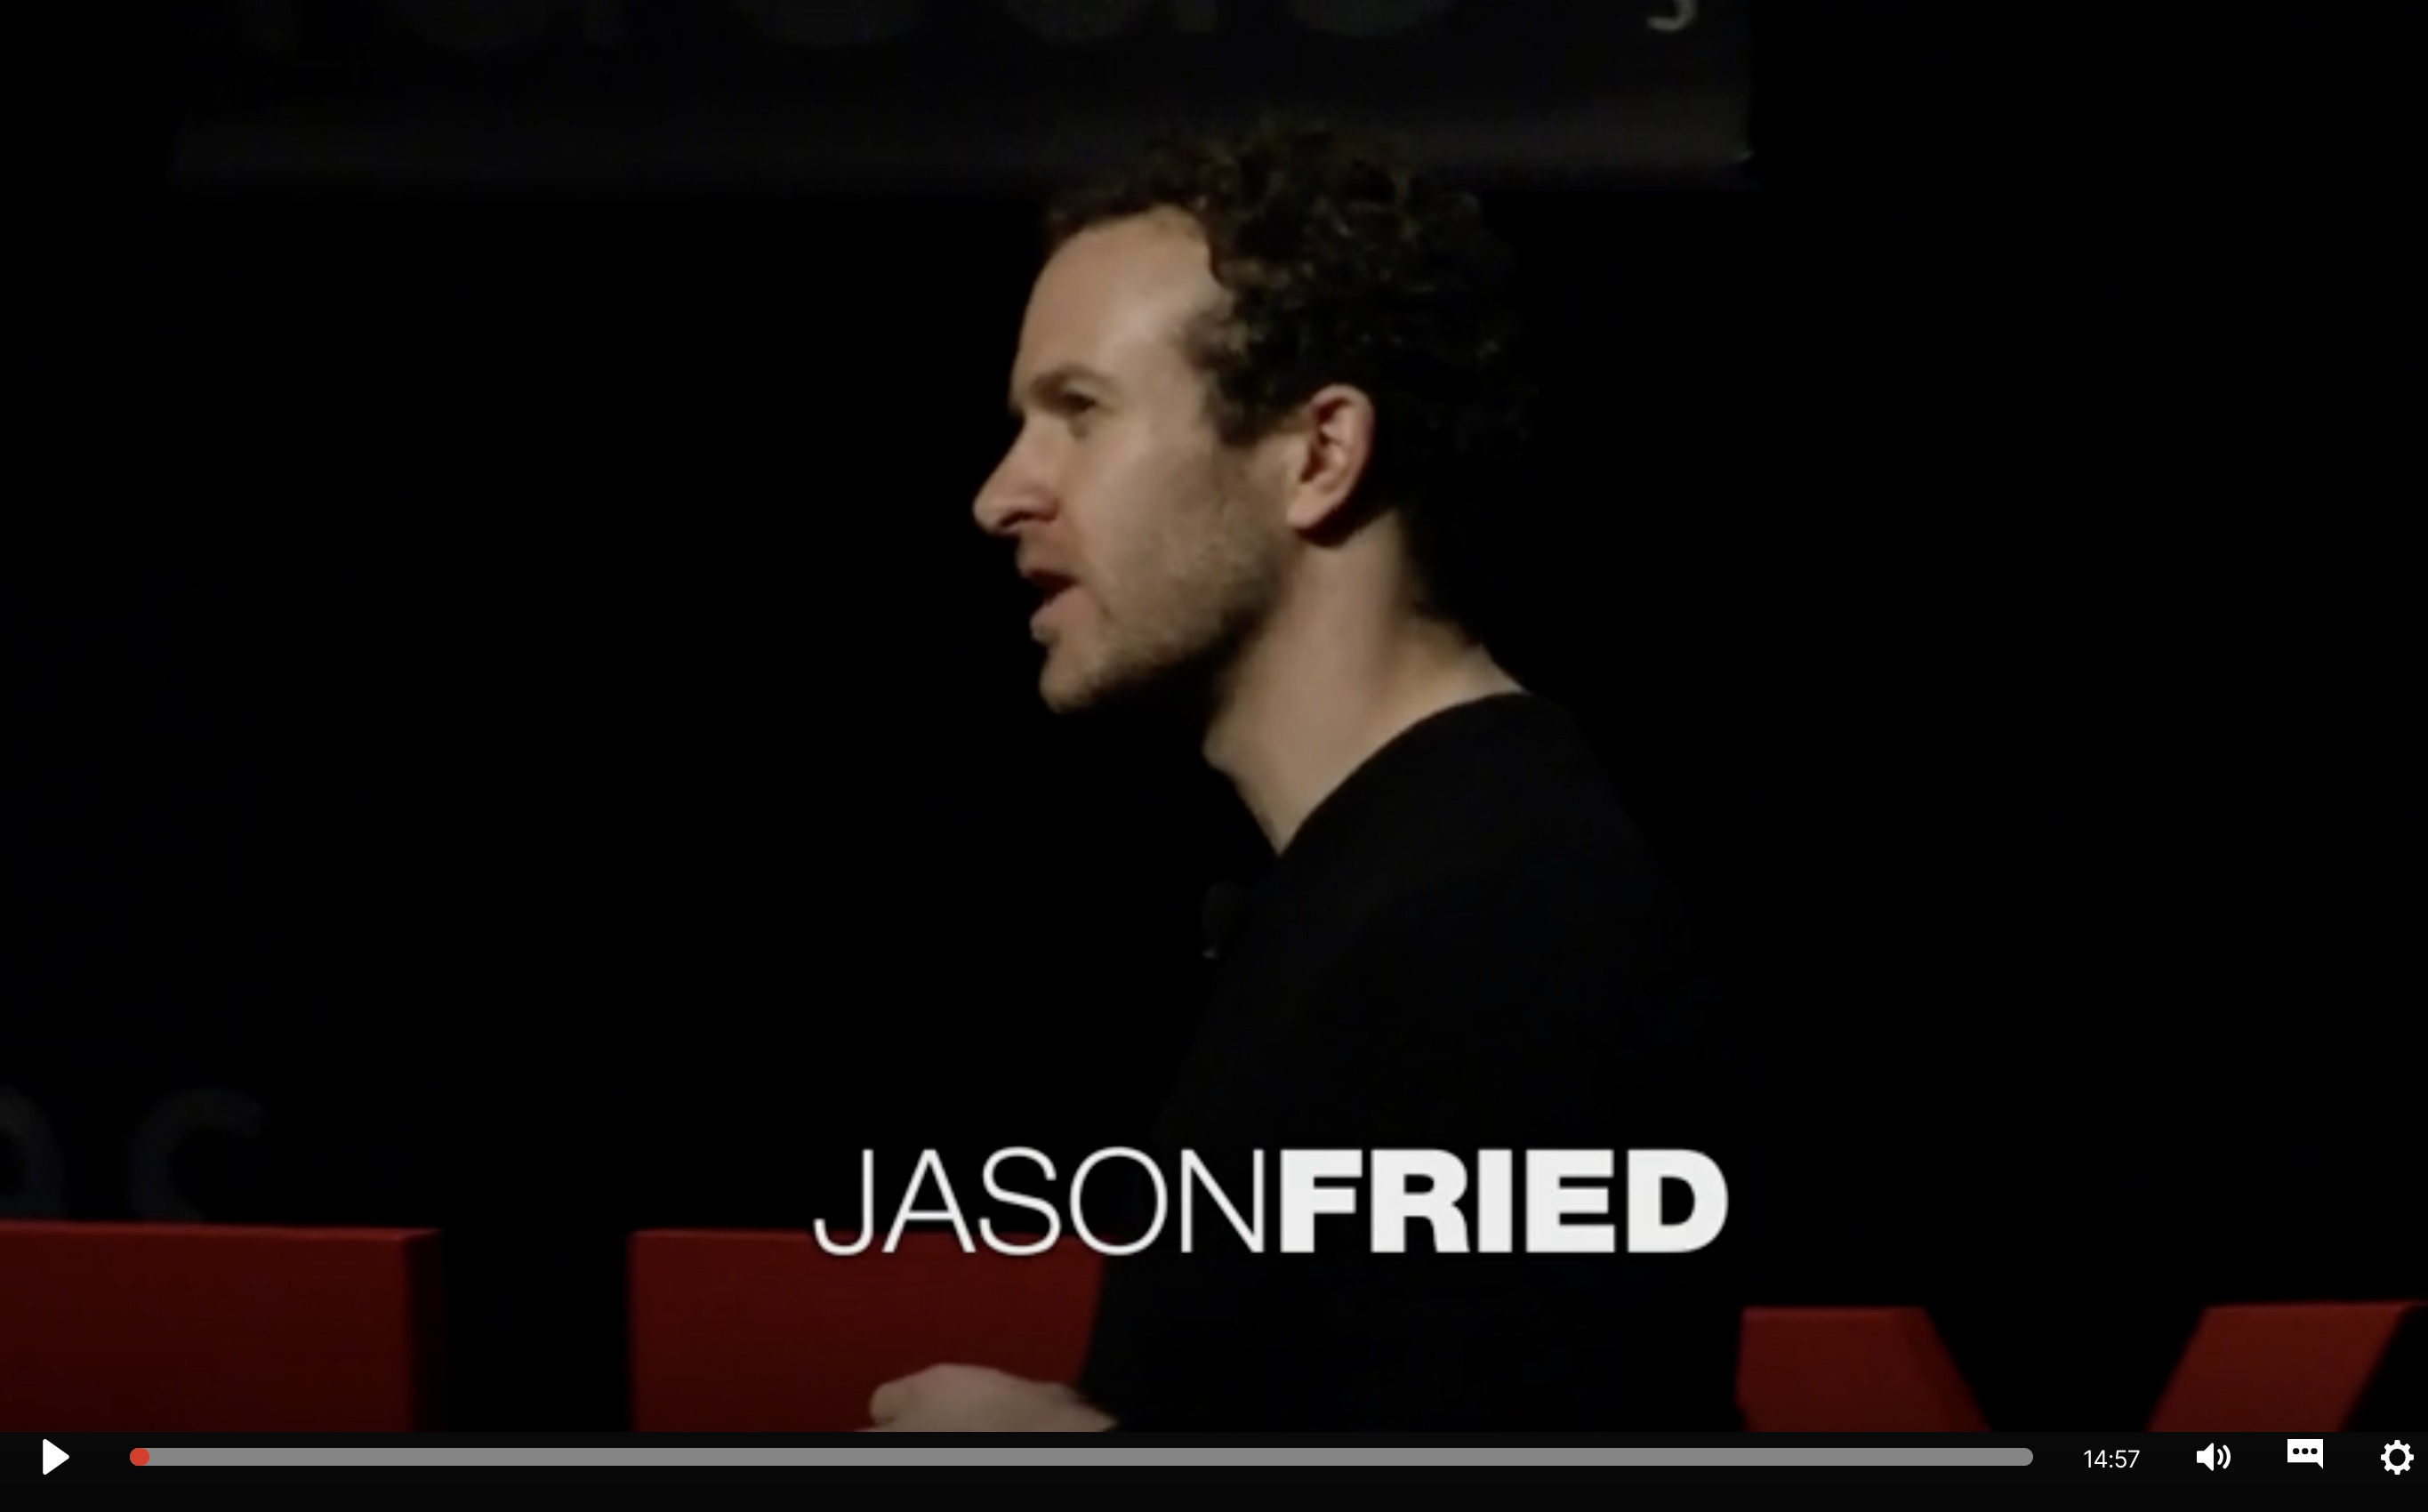 Jason Fried Thought Leadership